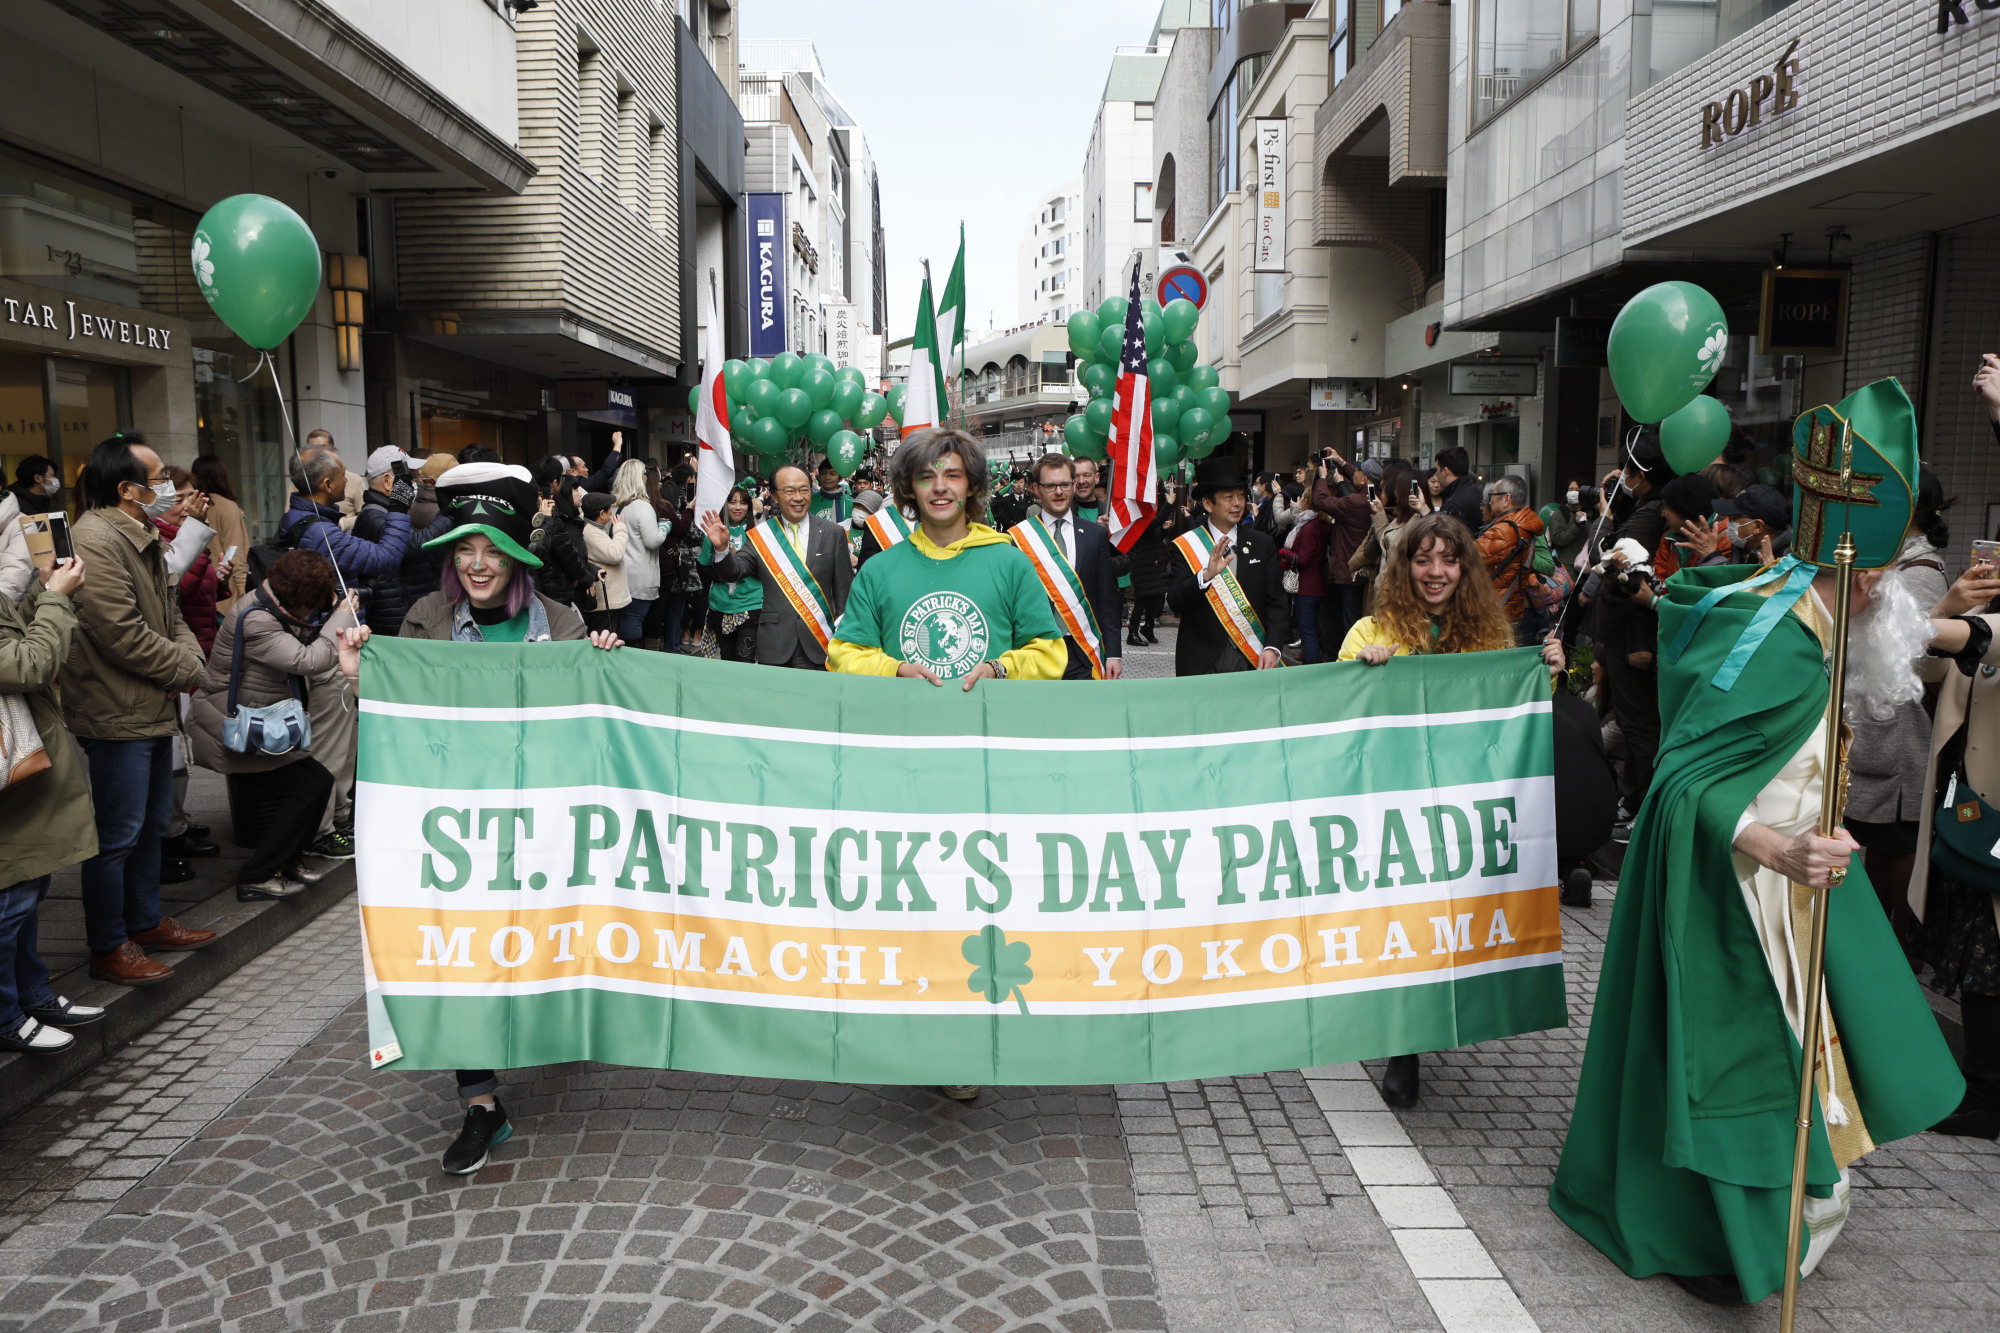 People take part in a St. Patrick